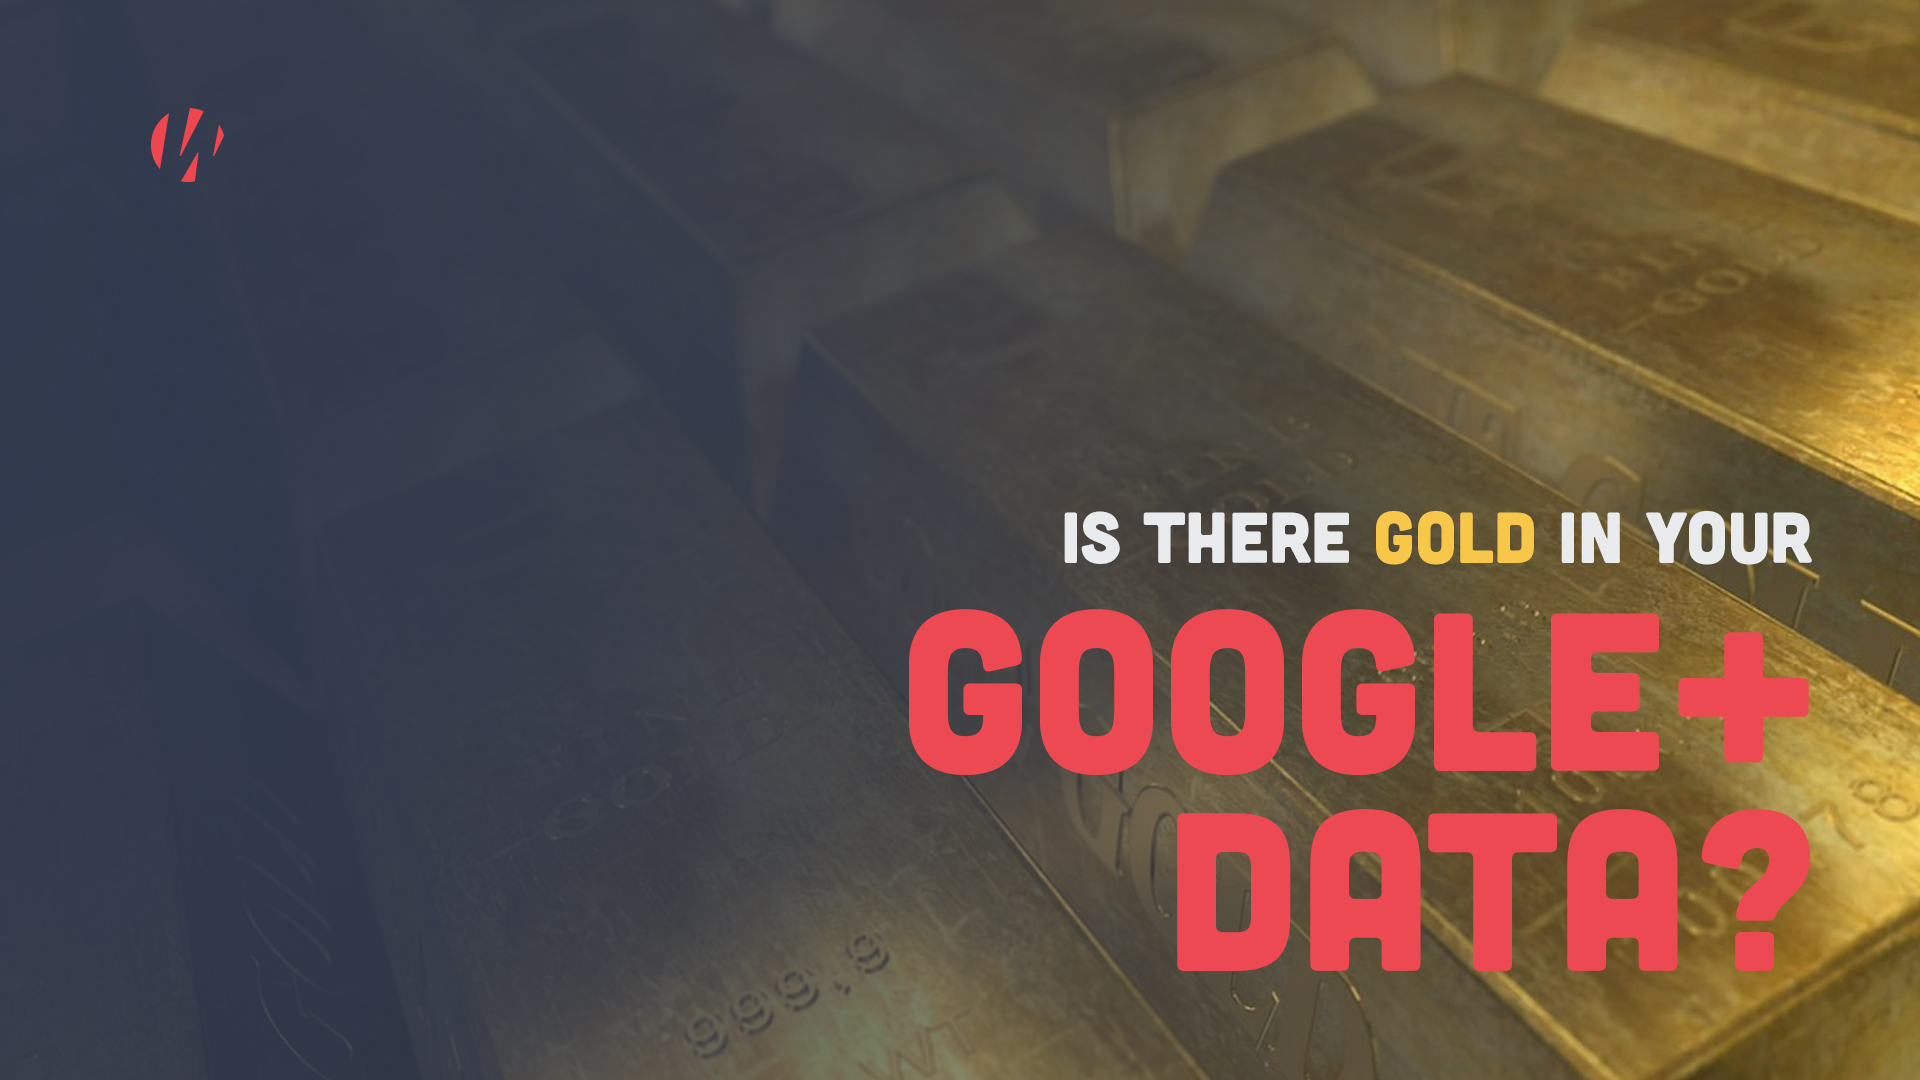 Is there gold in your Google+ data?